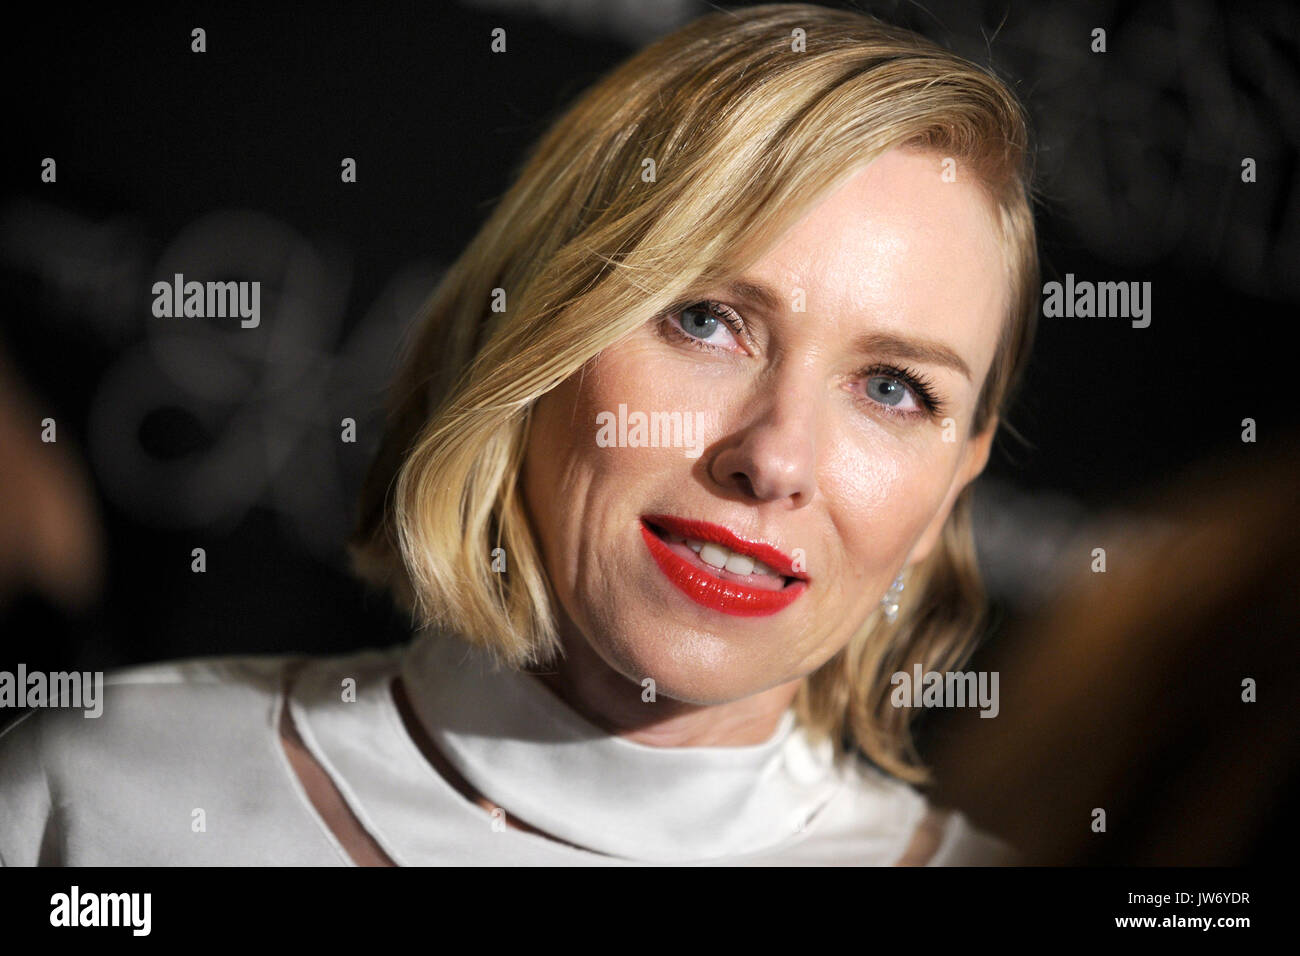 Naomi Watts attends 'The Glass Castle' New York screening at SVA Theatre on August 9, 2017 in New York City. - Stock Image